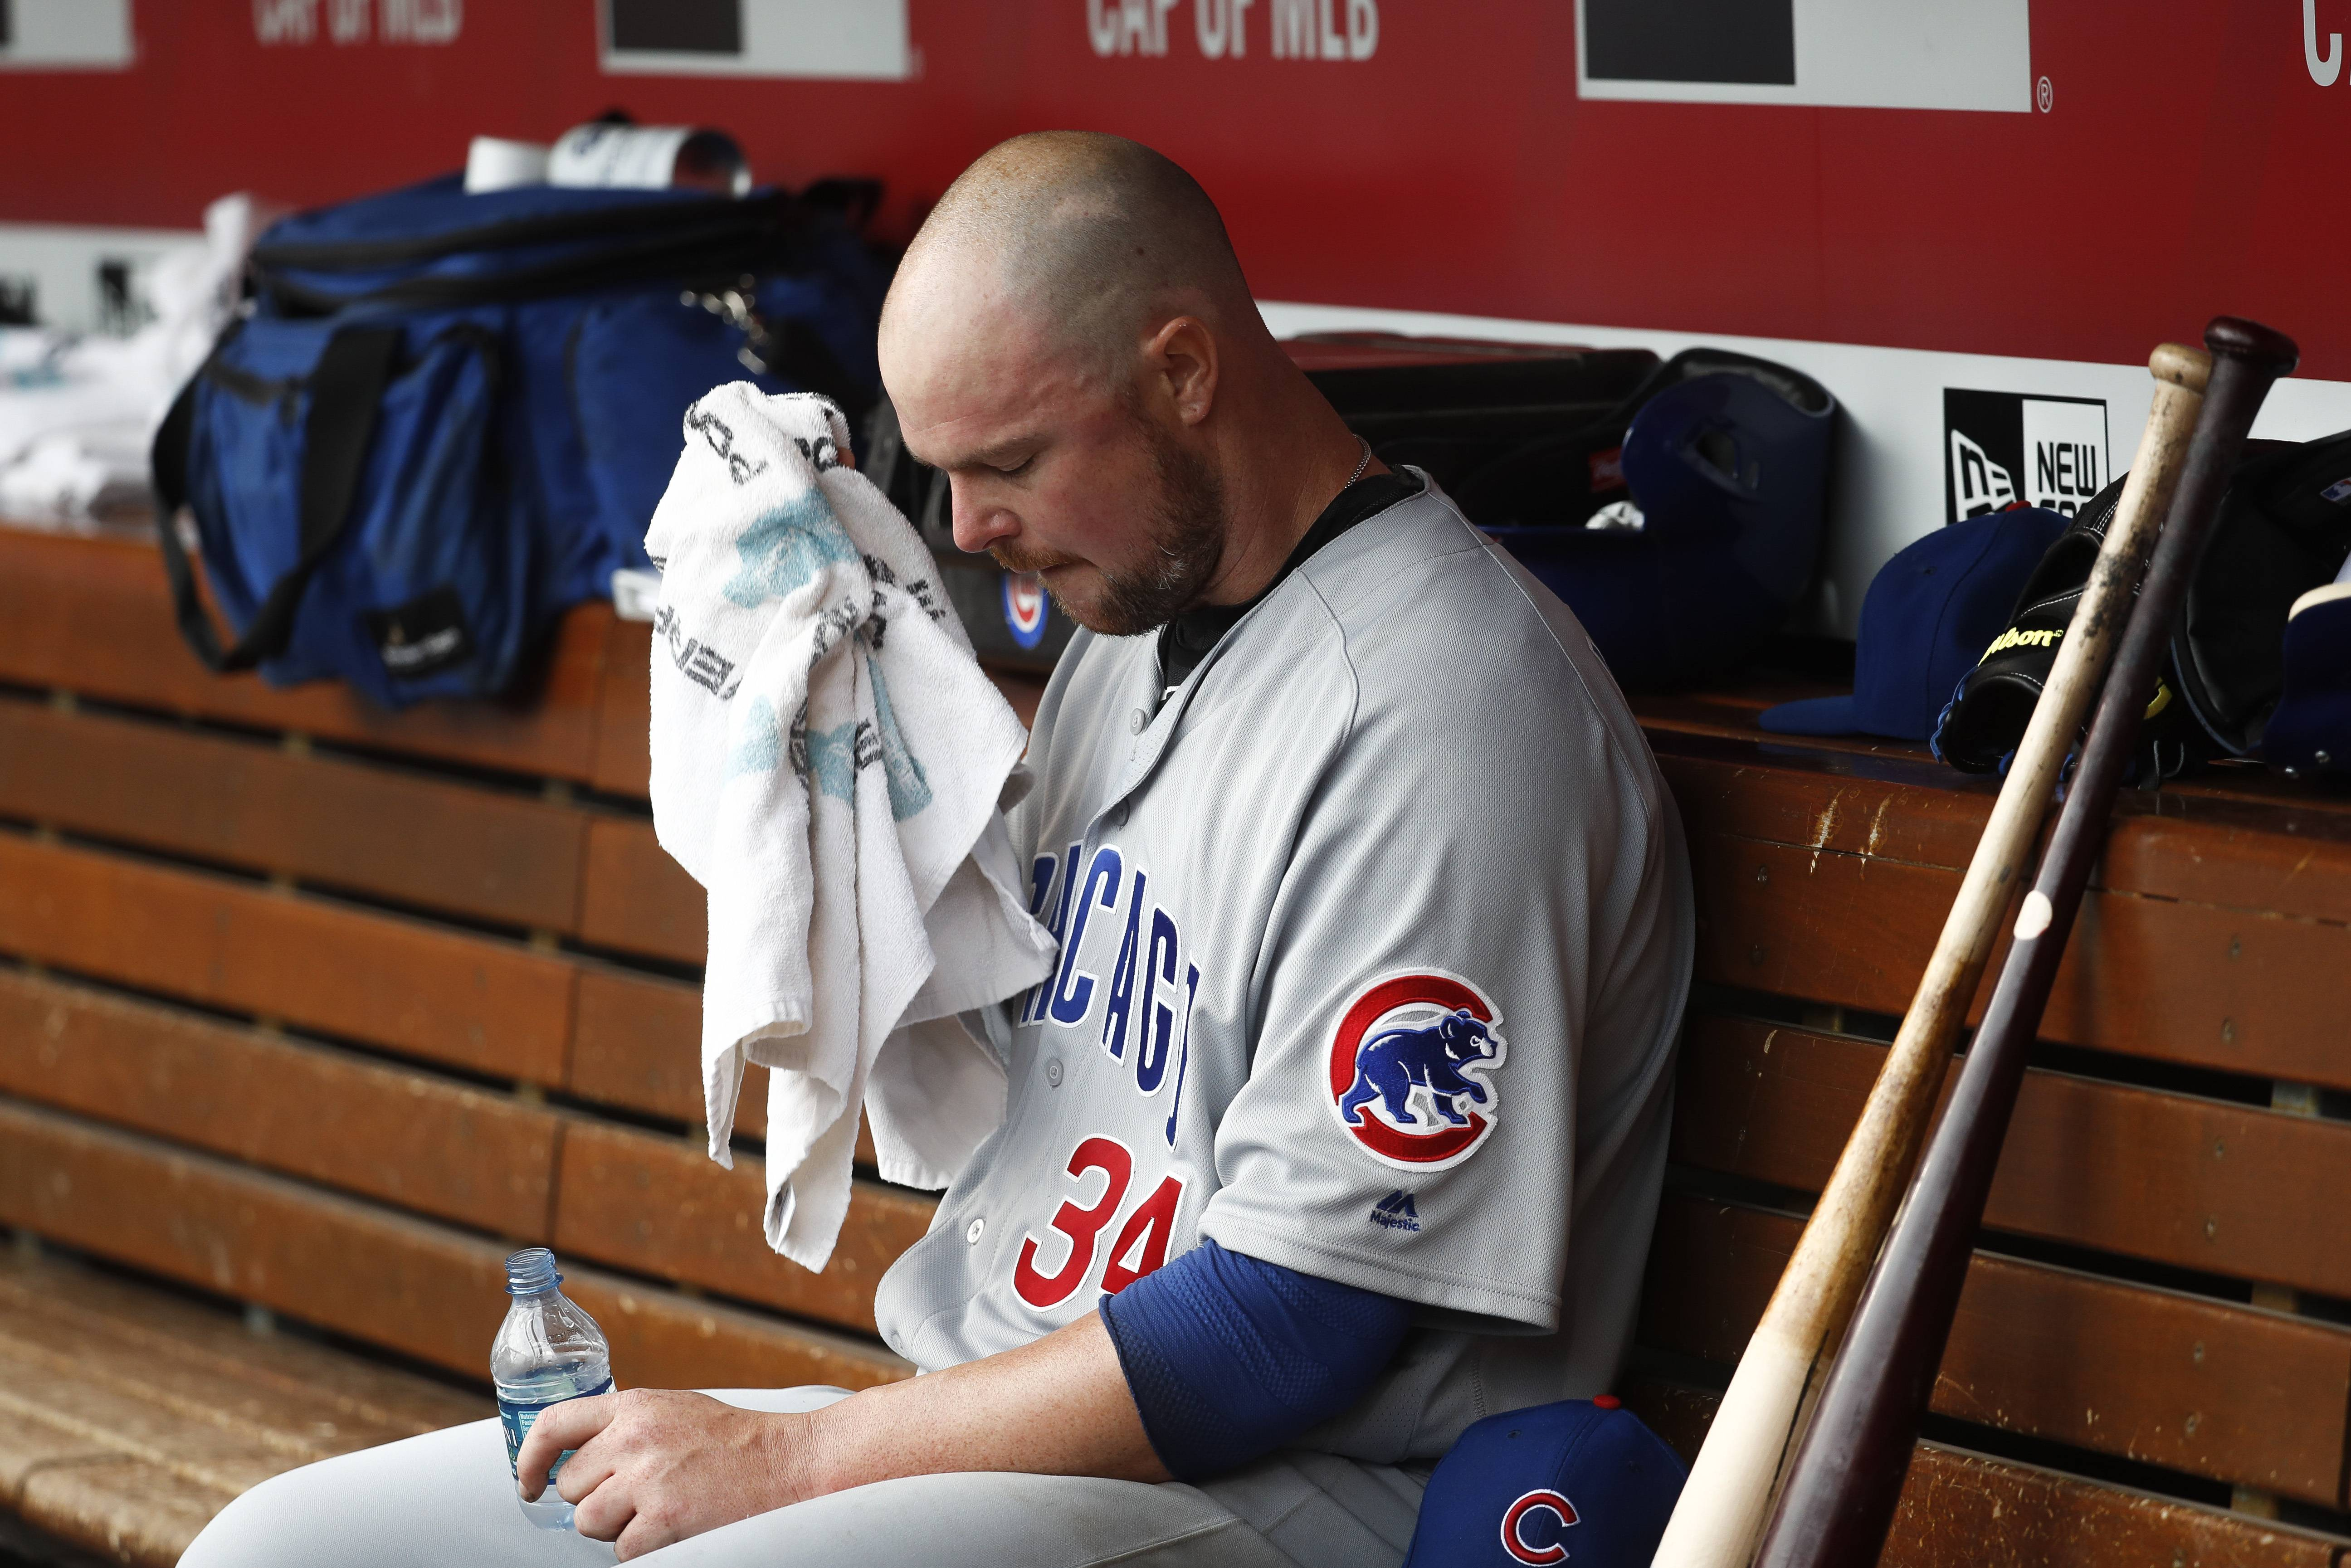 Chicago Cubs starting pitcher Jon Lester sits in the dugout after closing the third inning of a baseball game against the Cincinnati Reds, Saturday, Oct. 1, 2016, in Cincinnati. (AP Photo/John Minchillo)